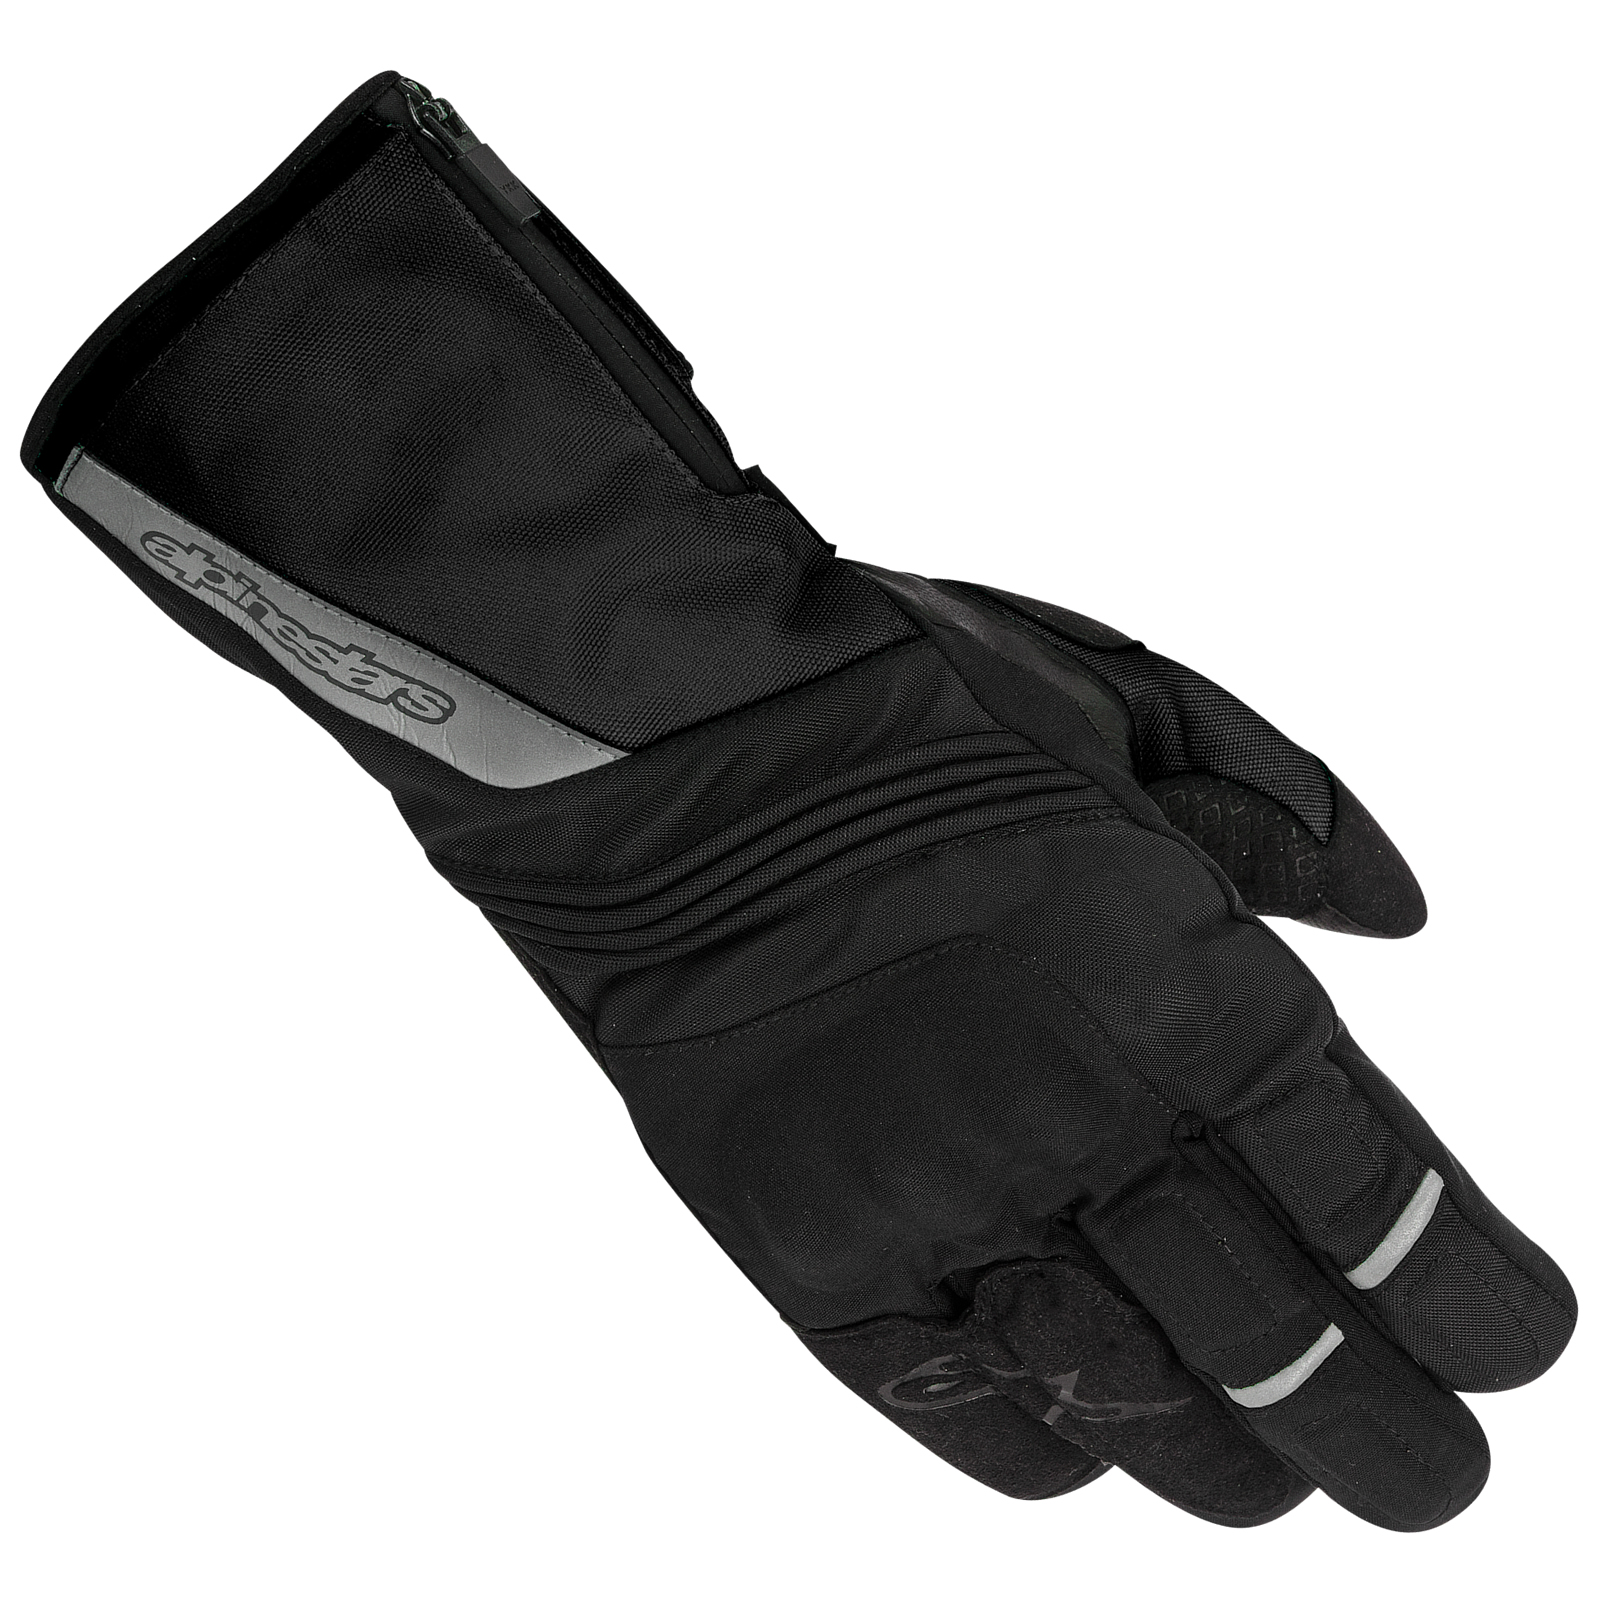 Heated motorcycle gloves new zealand - Alpinestars Celsius Heated Waterproof Leather Motorcycle Touring Winter